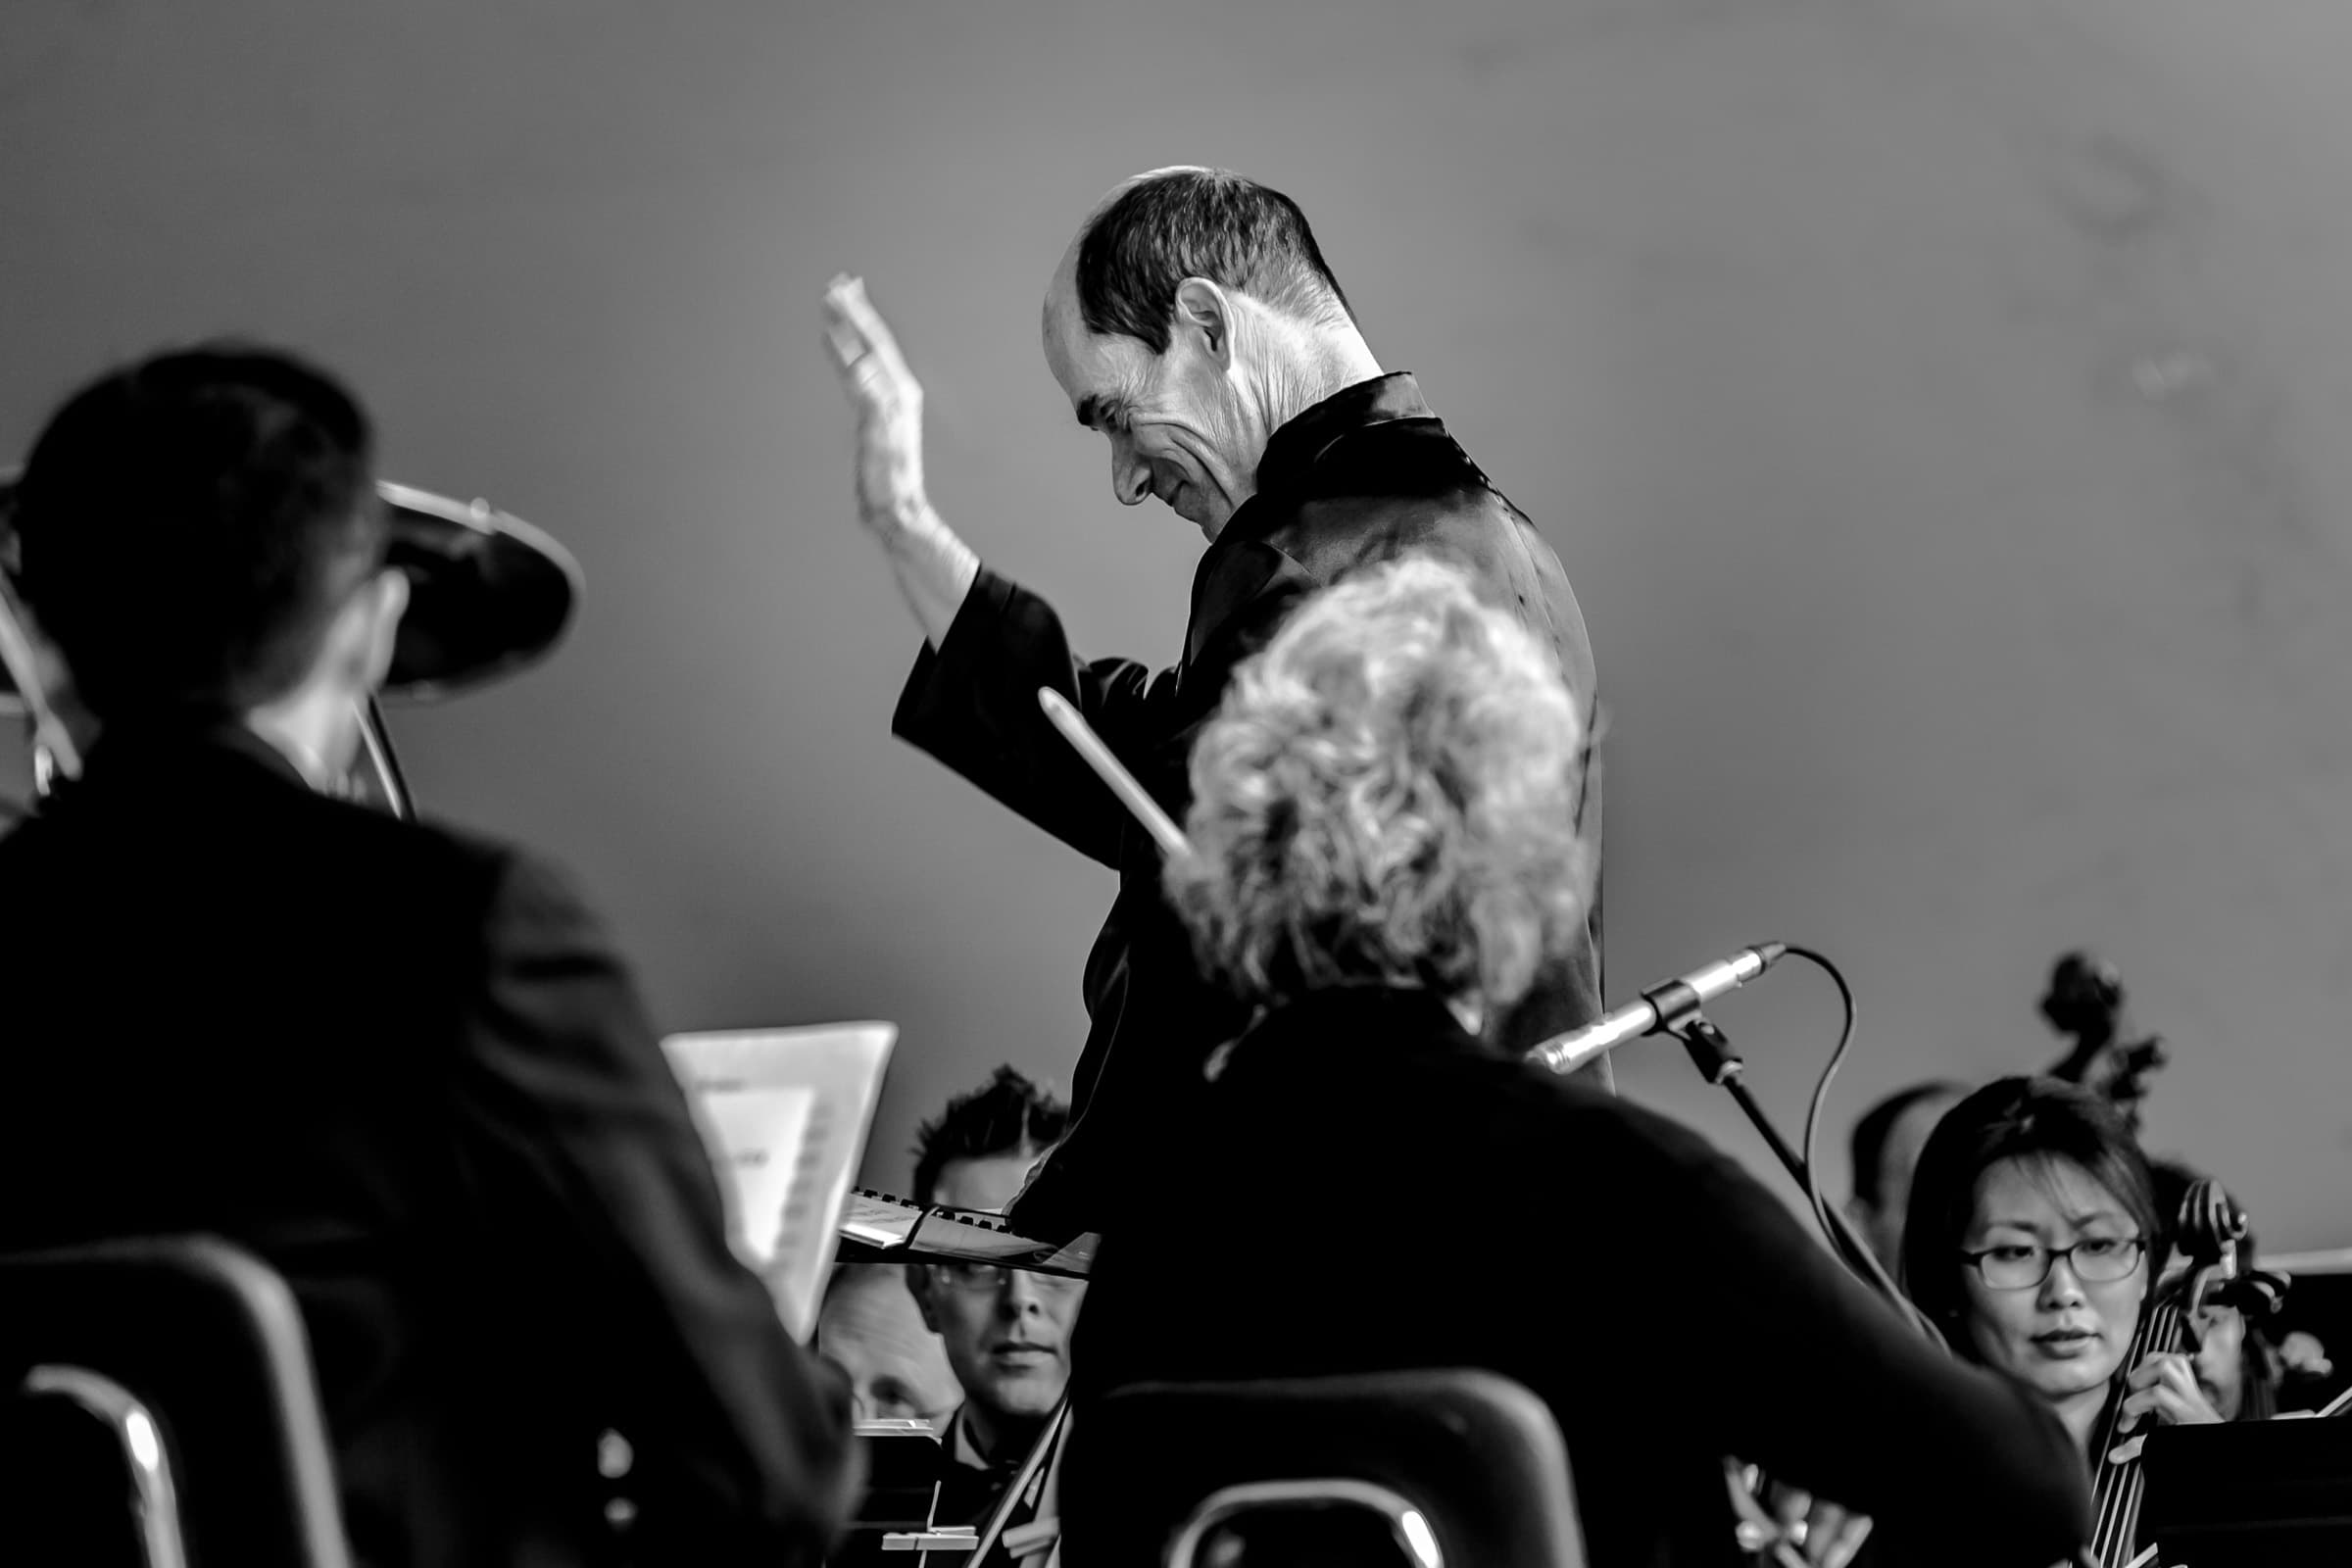 A photo of the Vermont Philharmonic Orchestra conductor performing as Missy walks into her Trapp Family Lodge wedding ceremony in Stowe, Vermont.